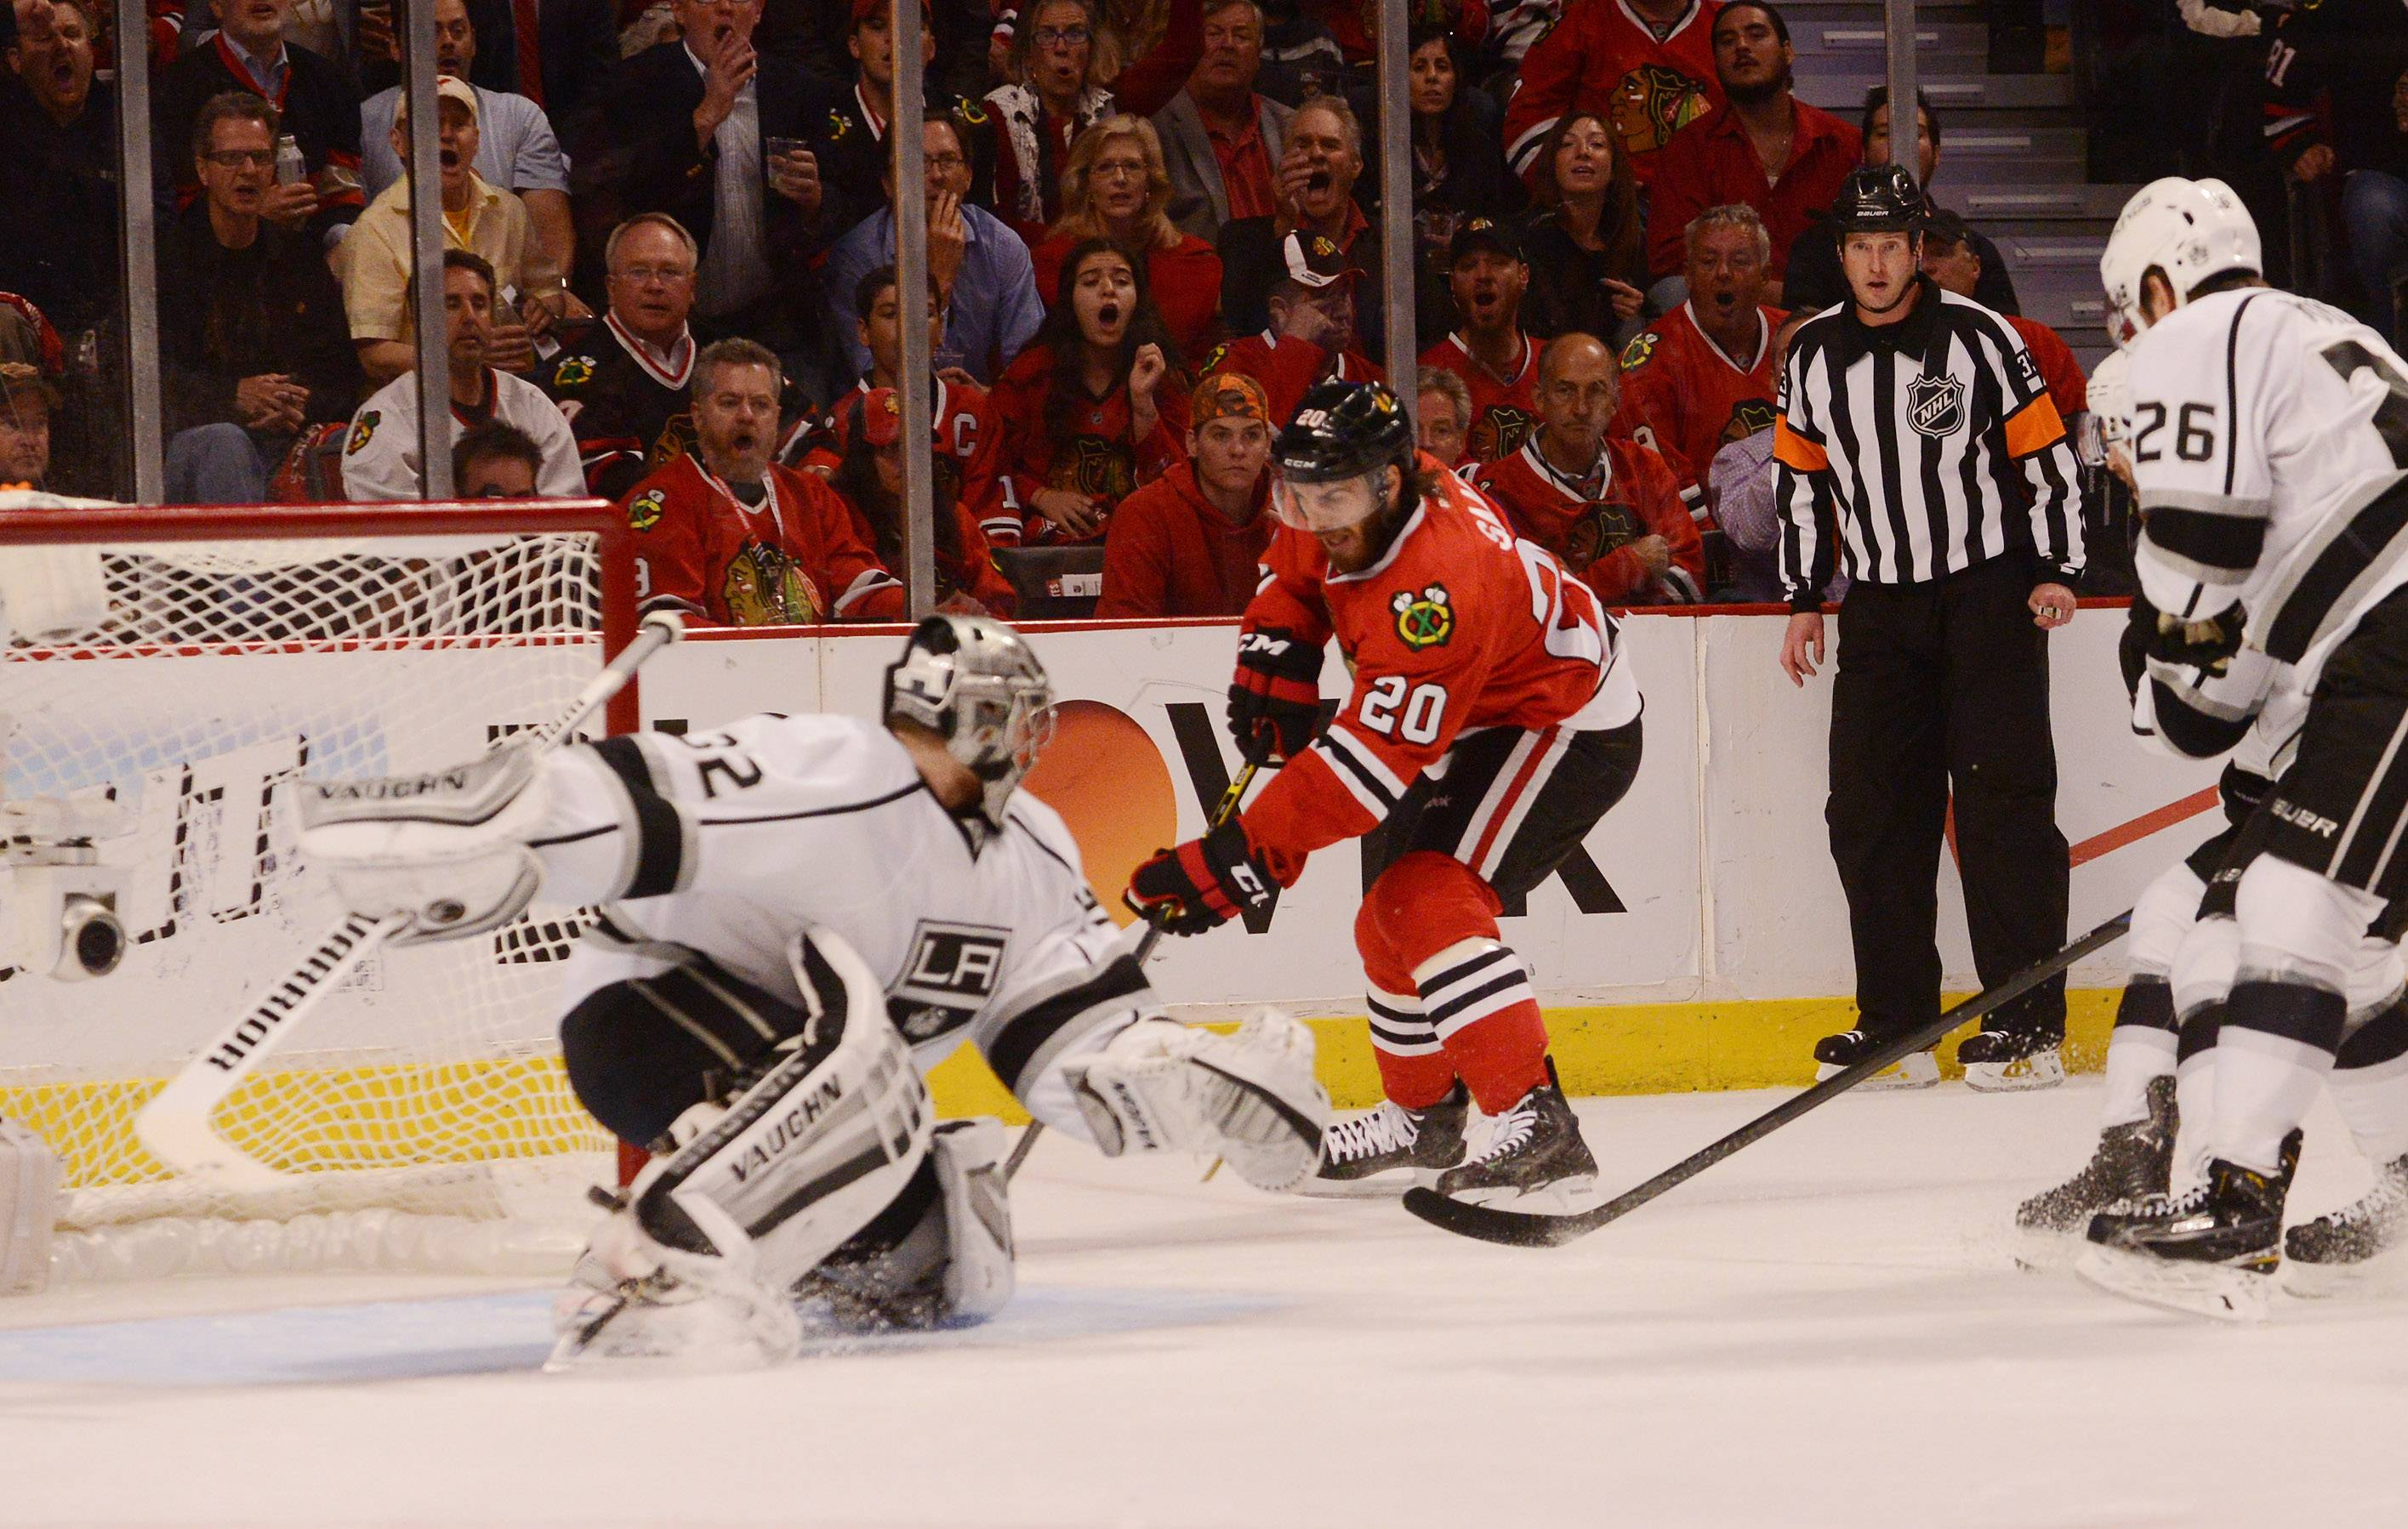 Chicago Blackhawks left wing Brandon Saad scores in the first period.